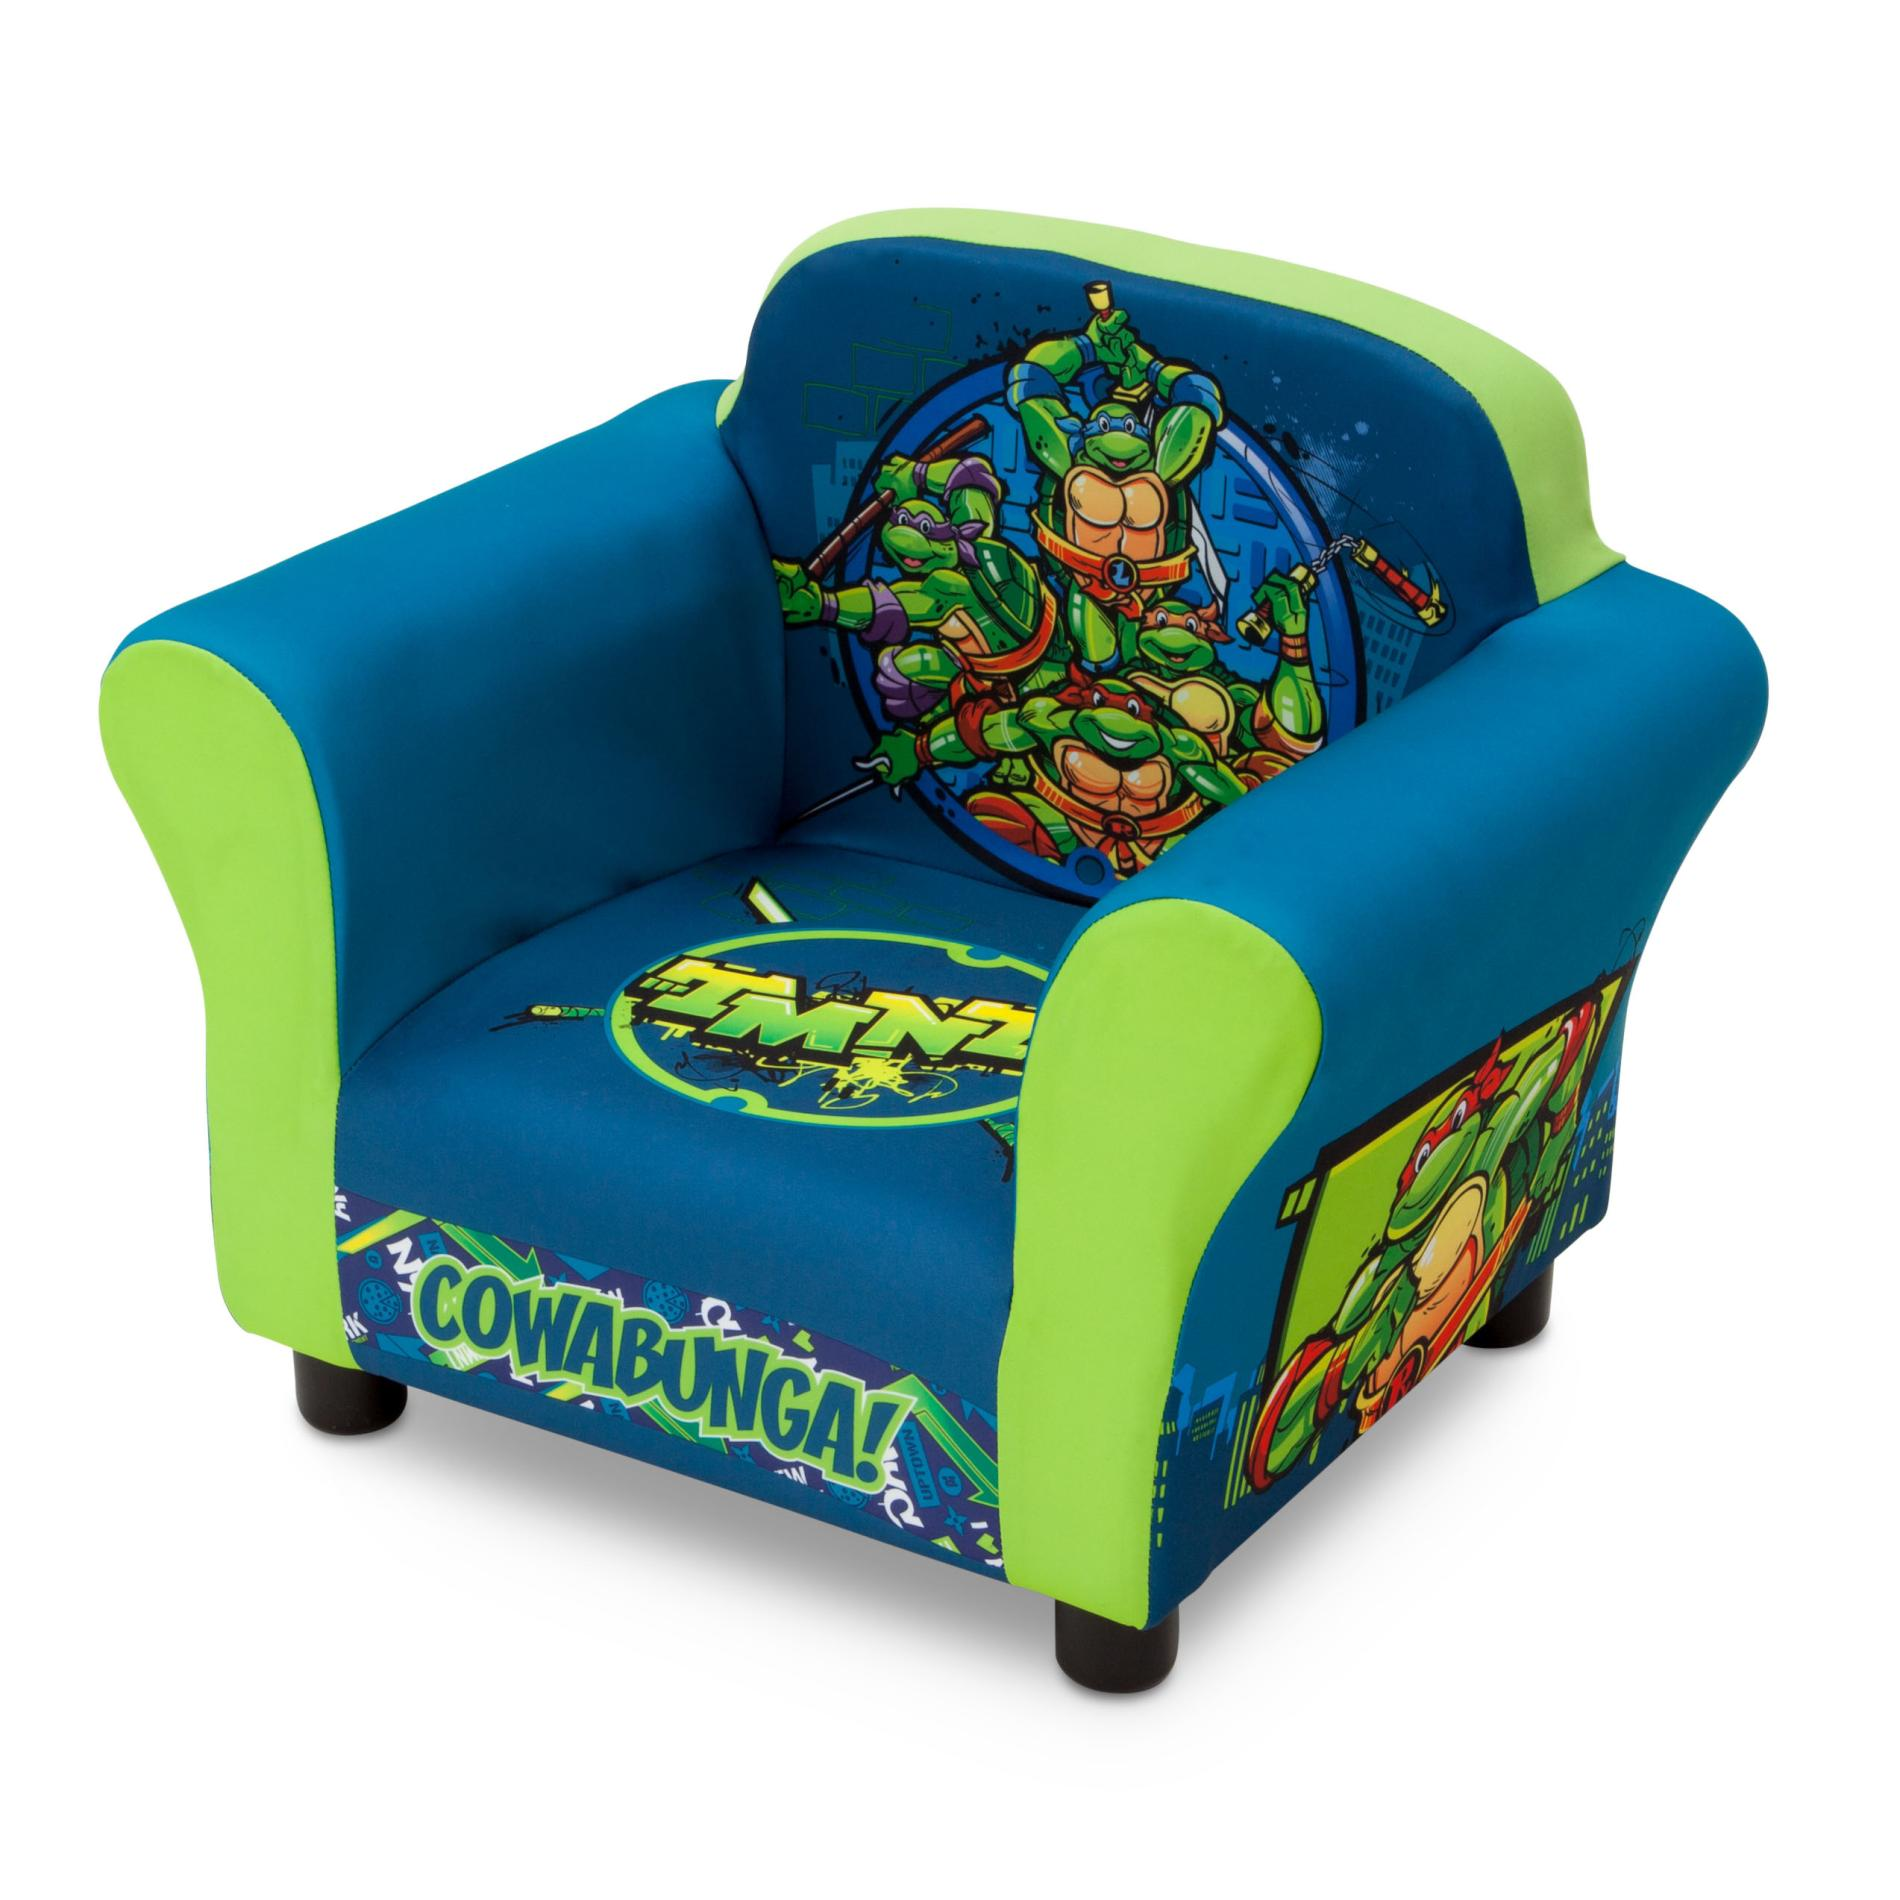 Toddler Chairs Nickelodeon Teenage Mutant Ninja Turtles Toddler Boy 39s